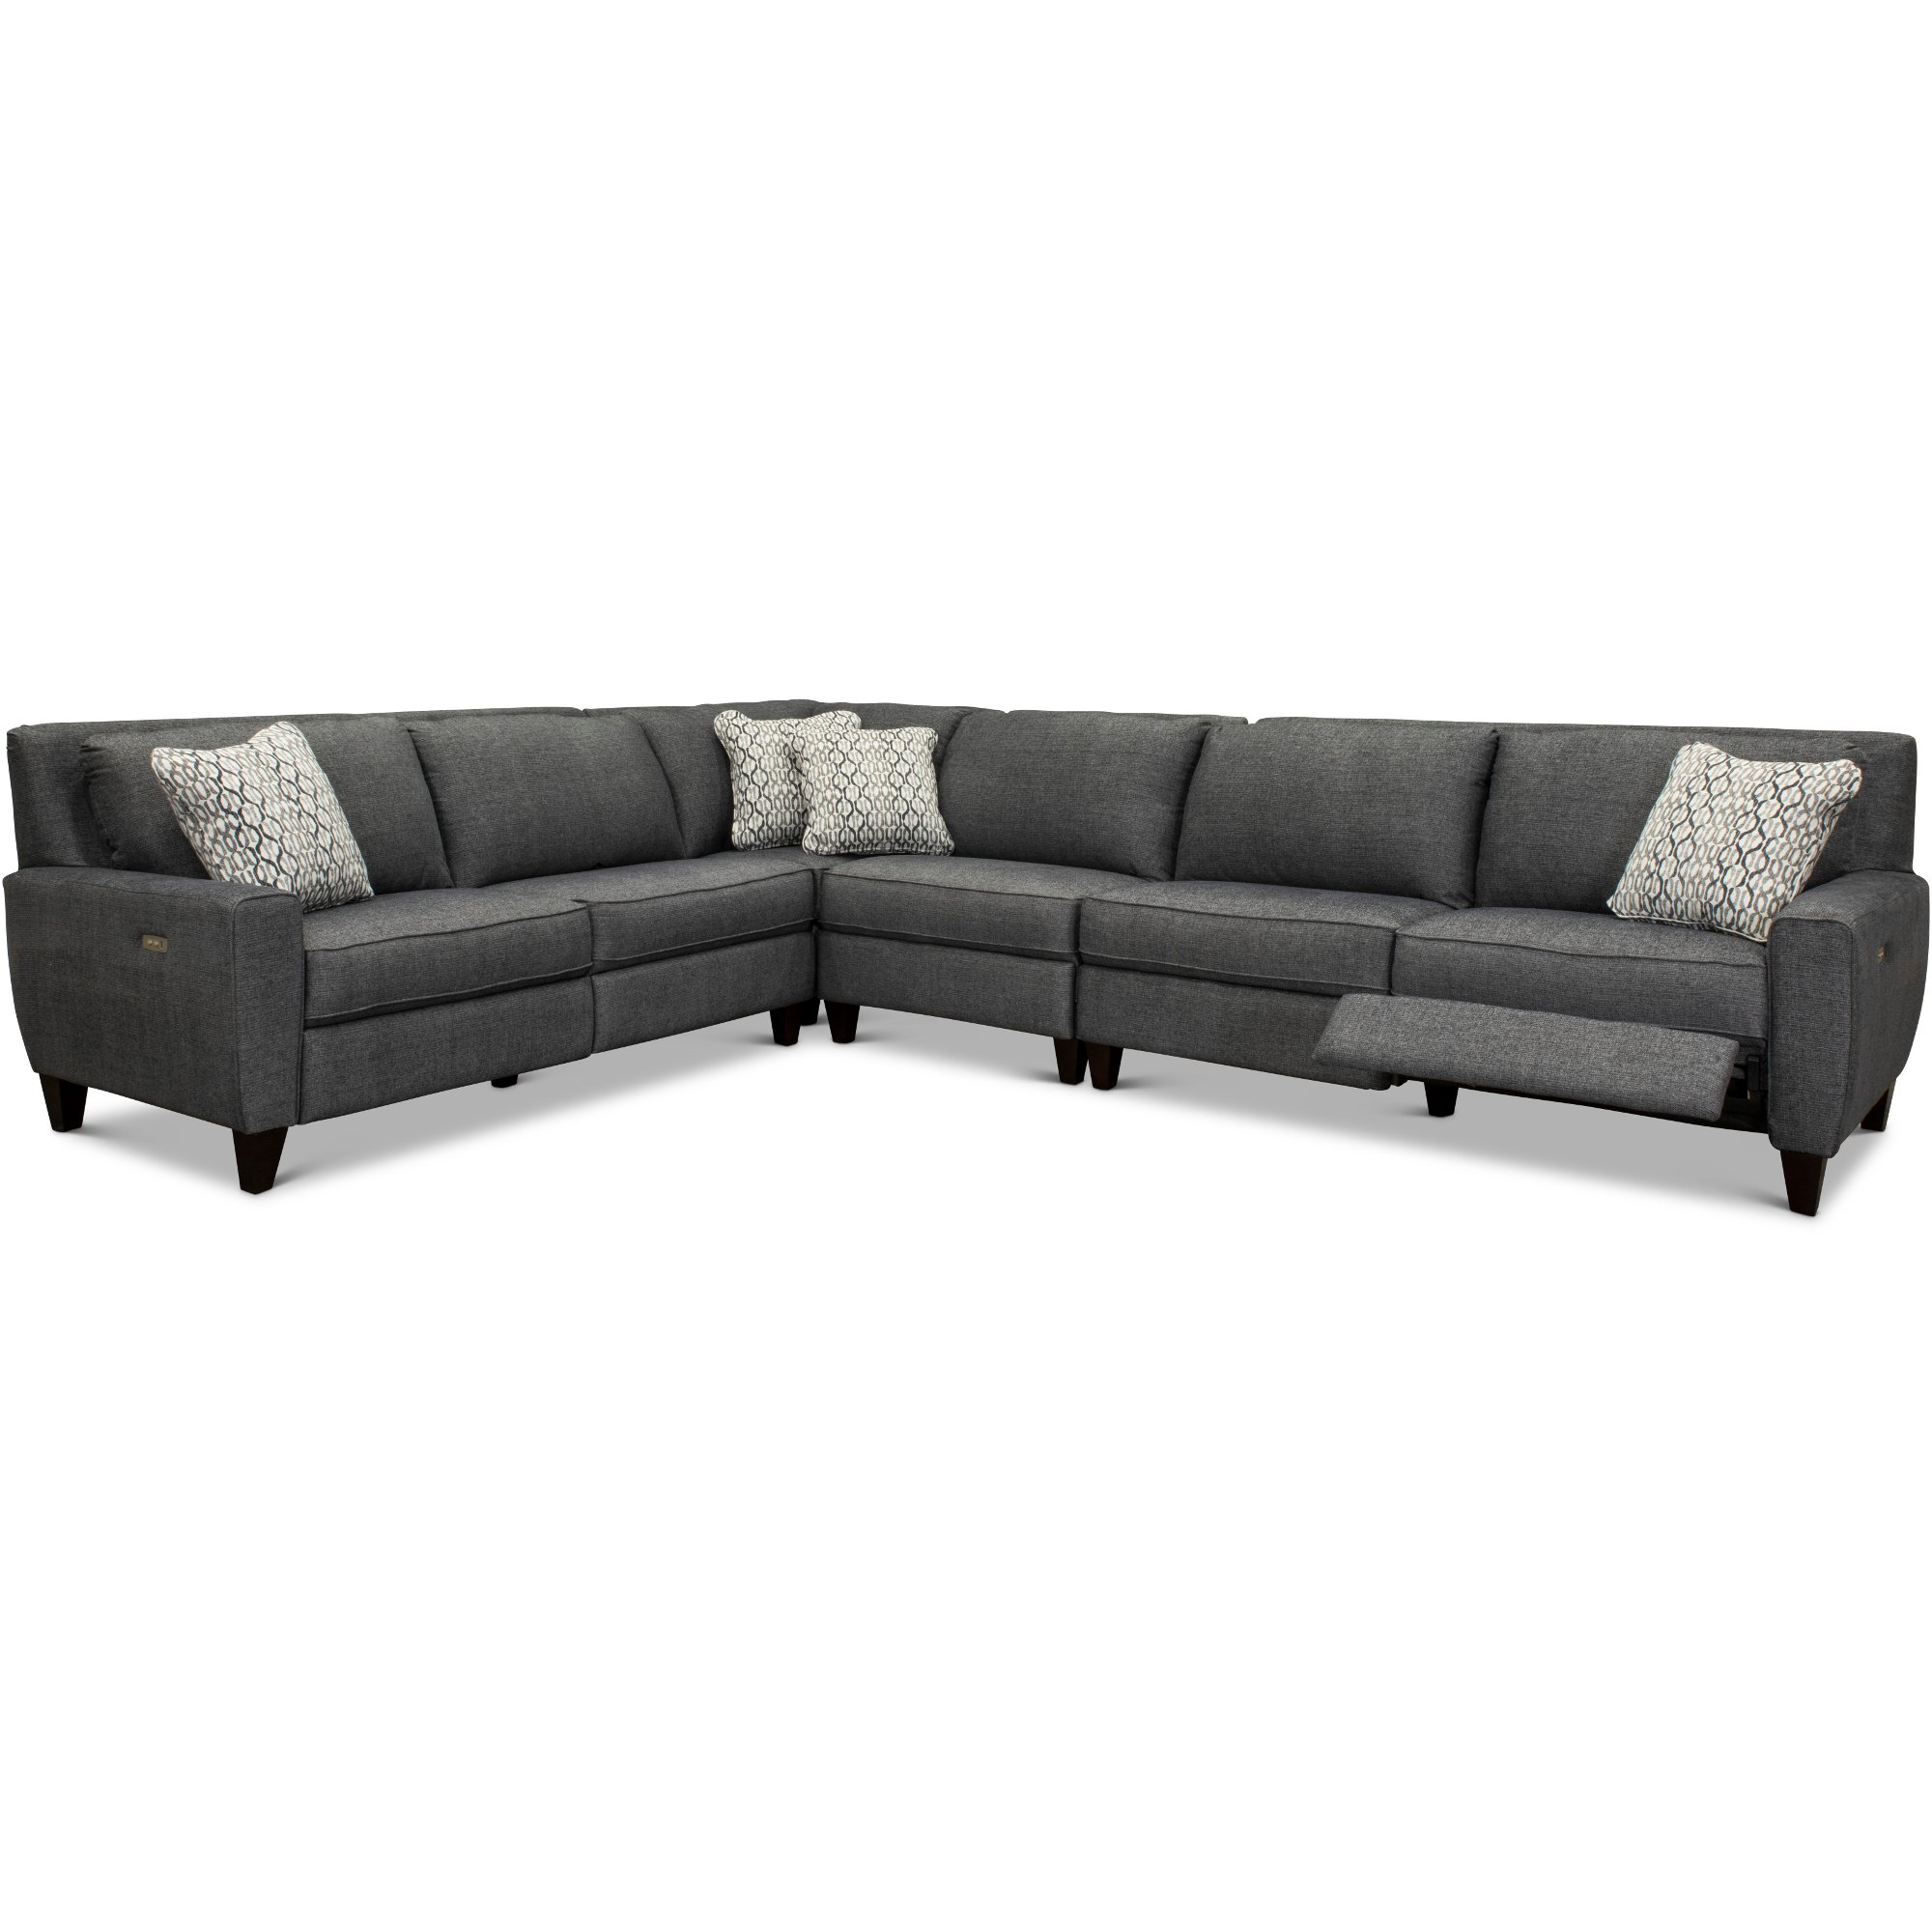 Charcoal Gray Duo 4 Piece Reclining Sectional Sofa Edie